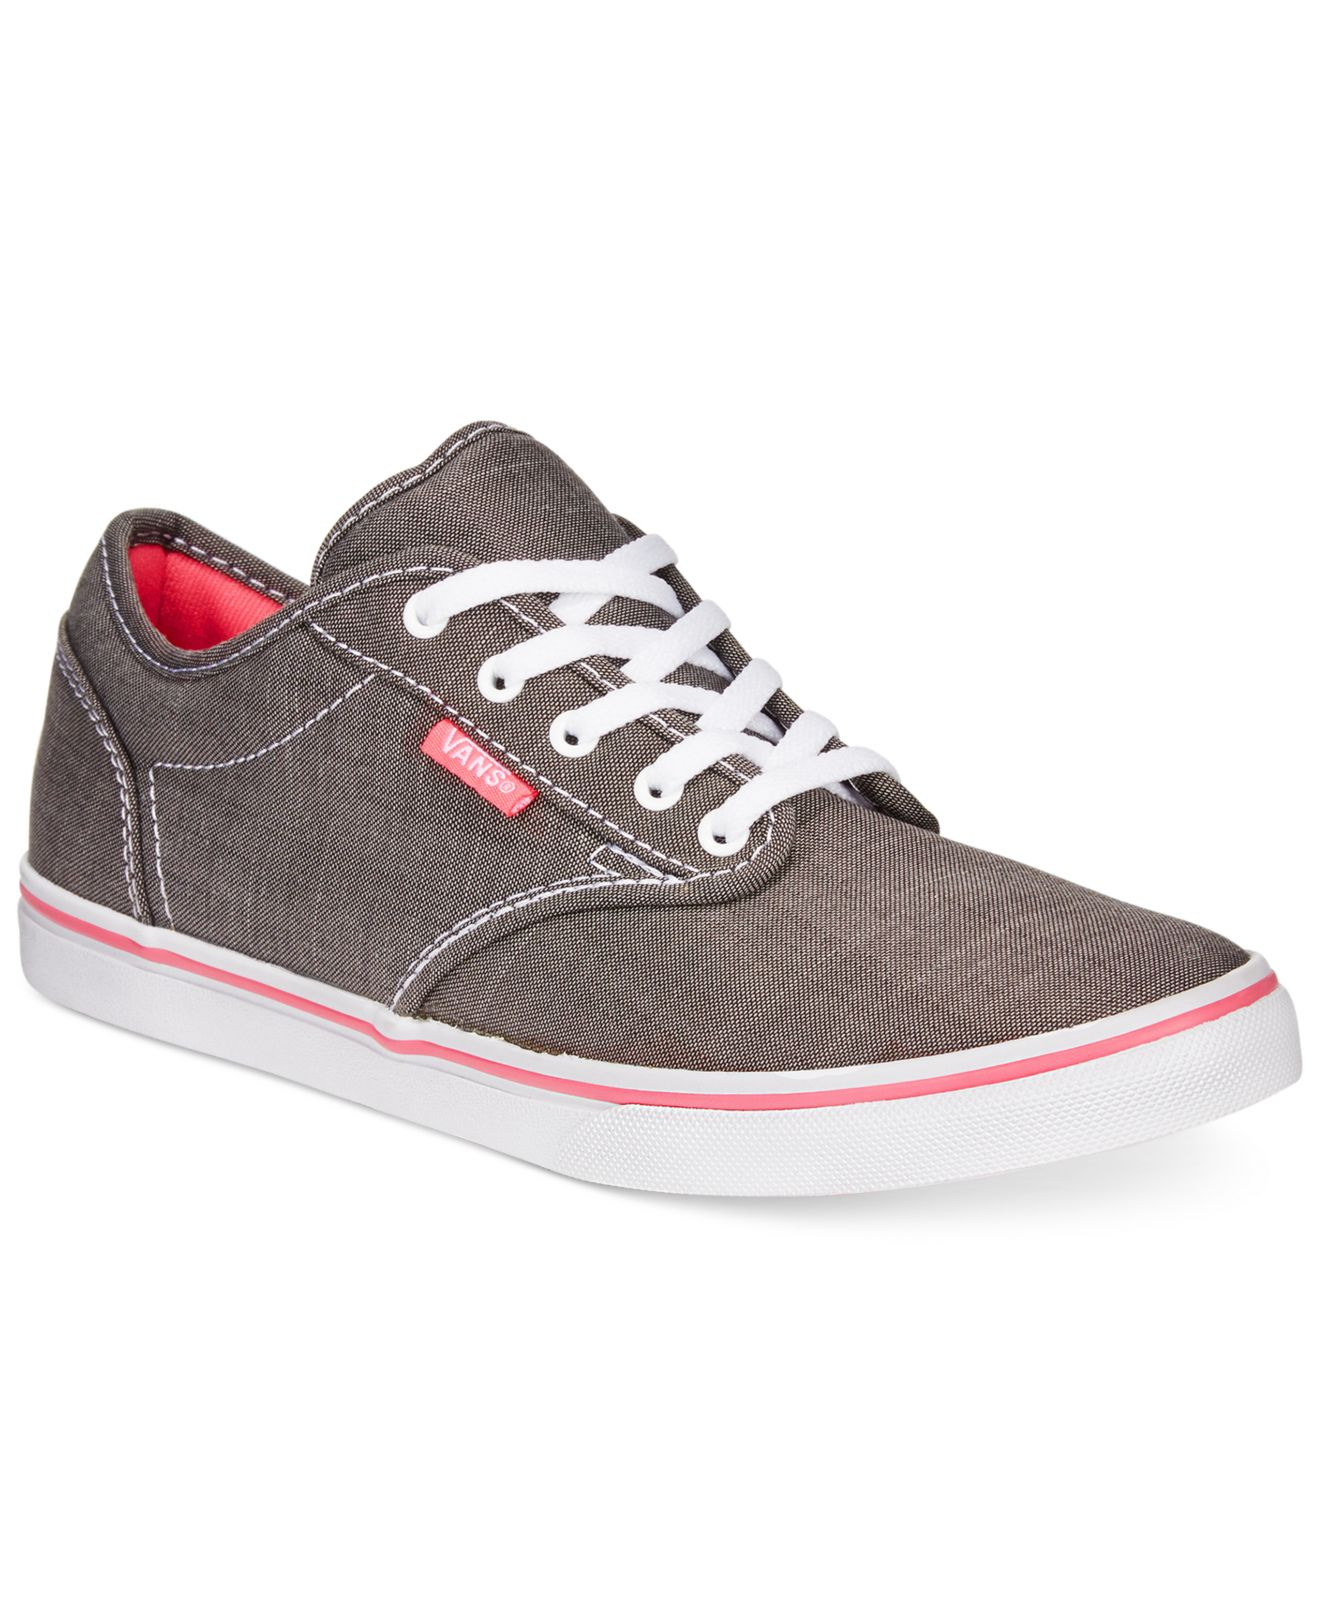 c01863046687 Lyst - Vans Women s Atwood Low Lace-up Sneakers in Gray